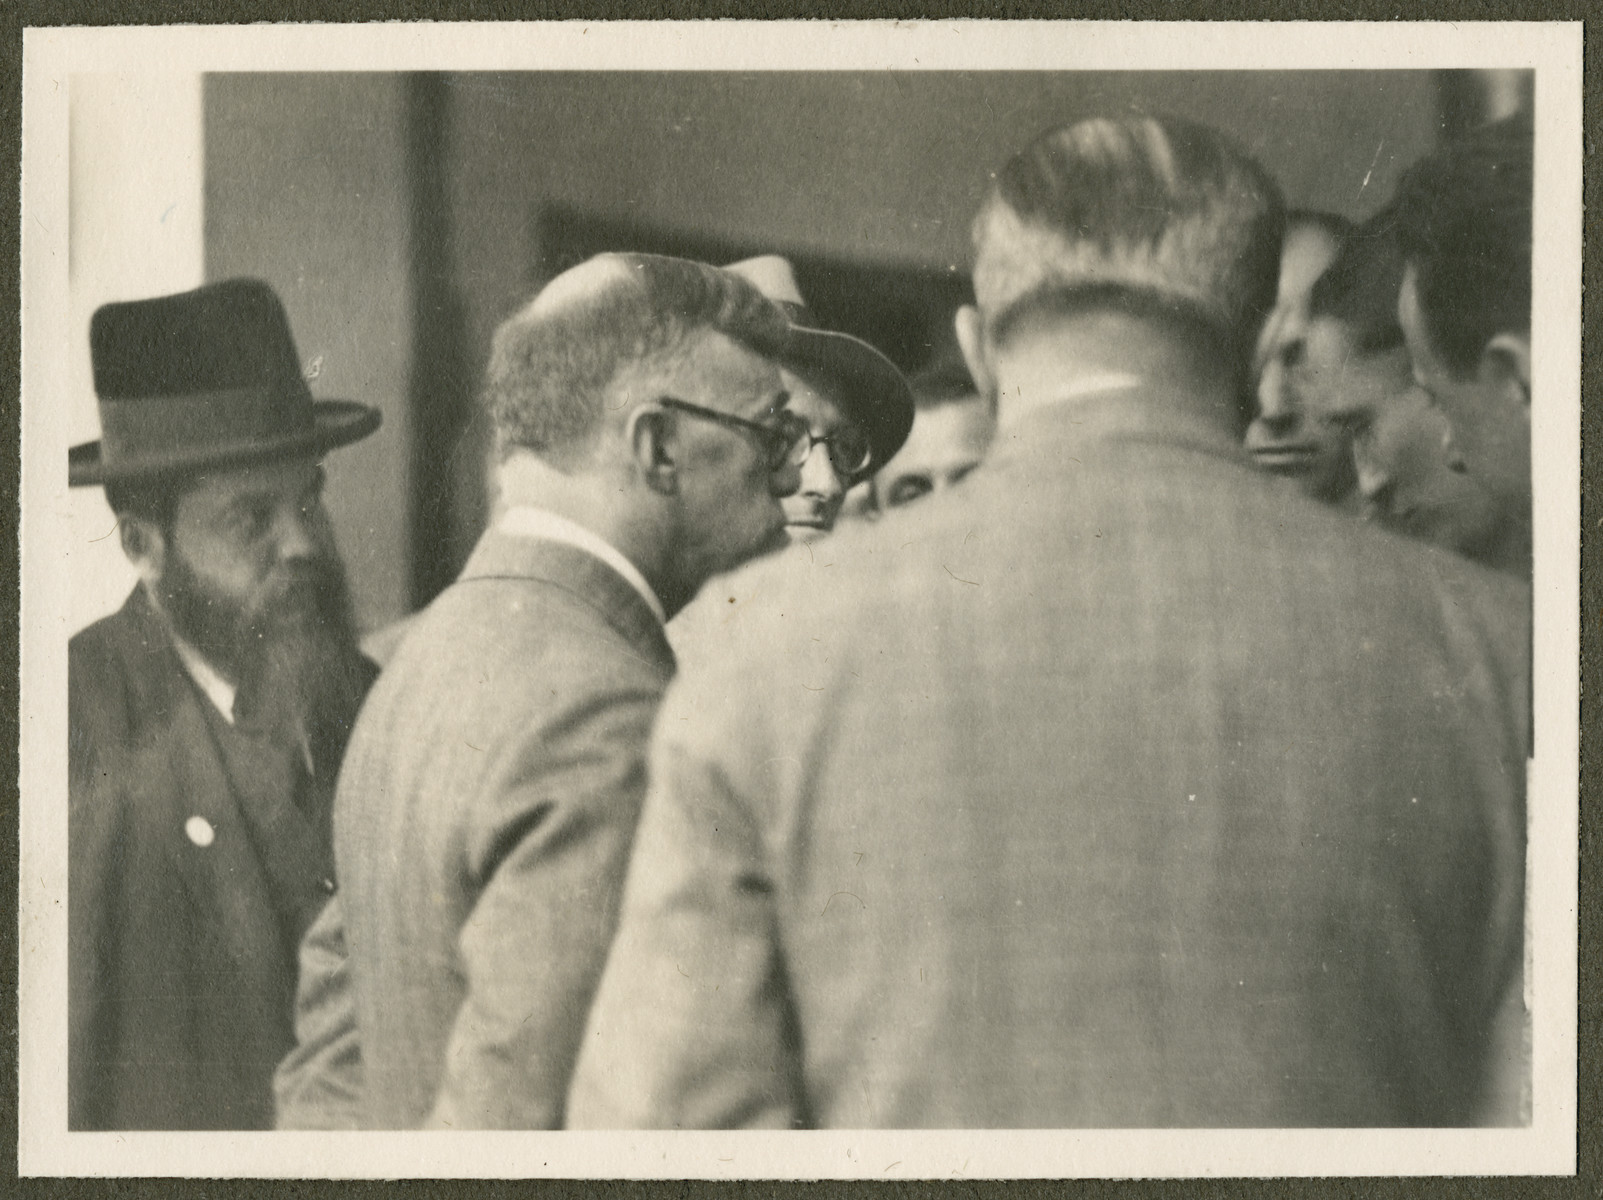 Zev Jabotinsky speaks to a group of men probably during the 18th Zionist Congress.